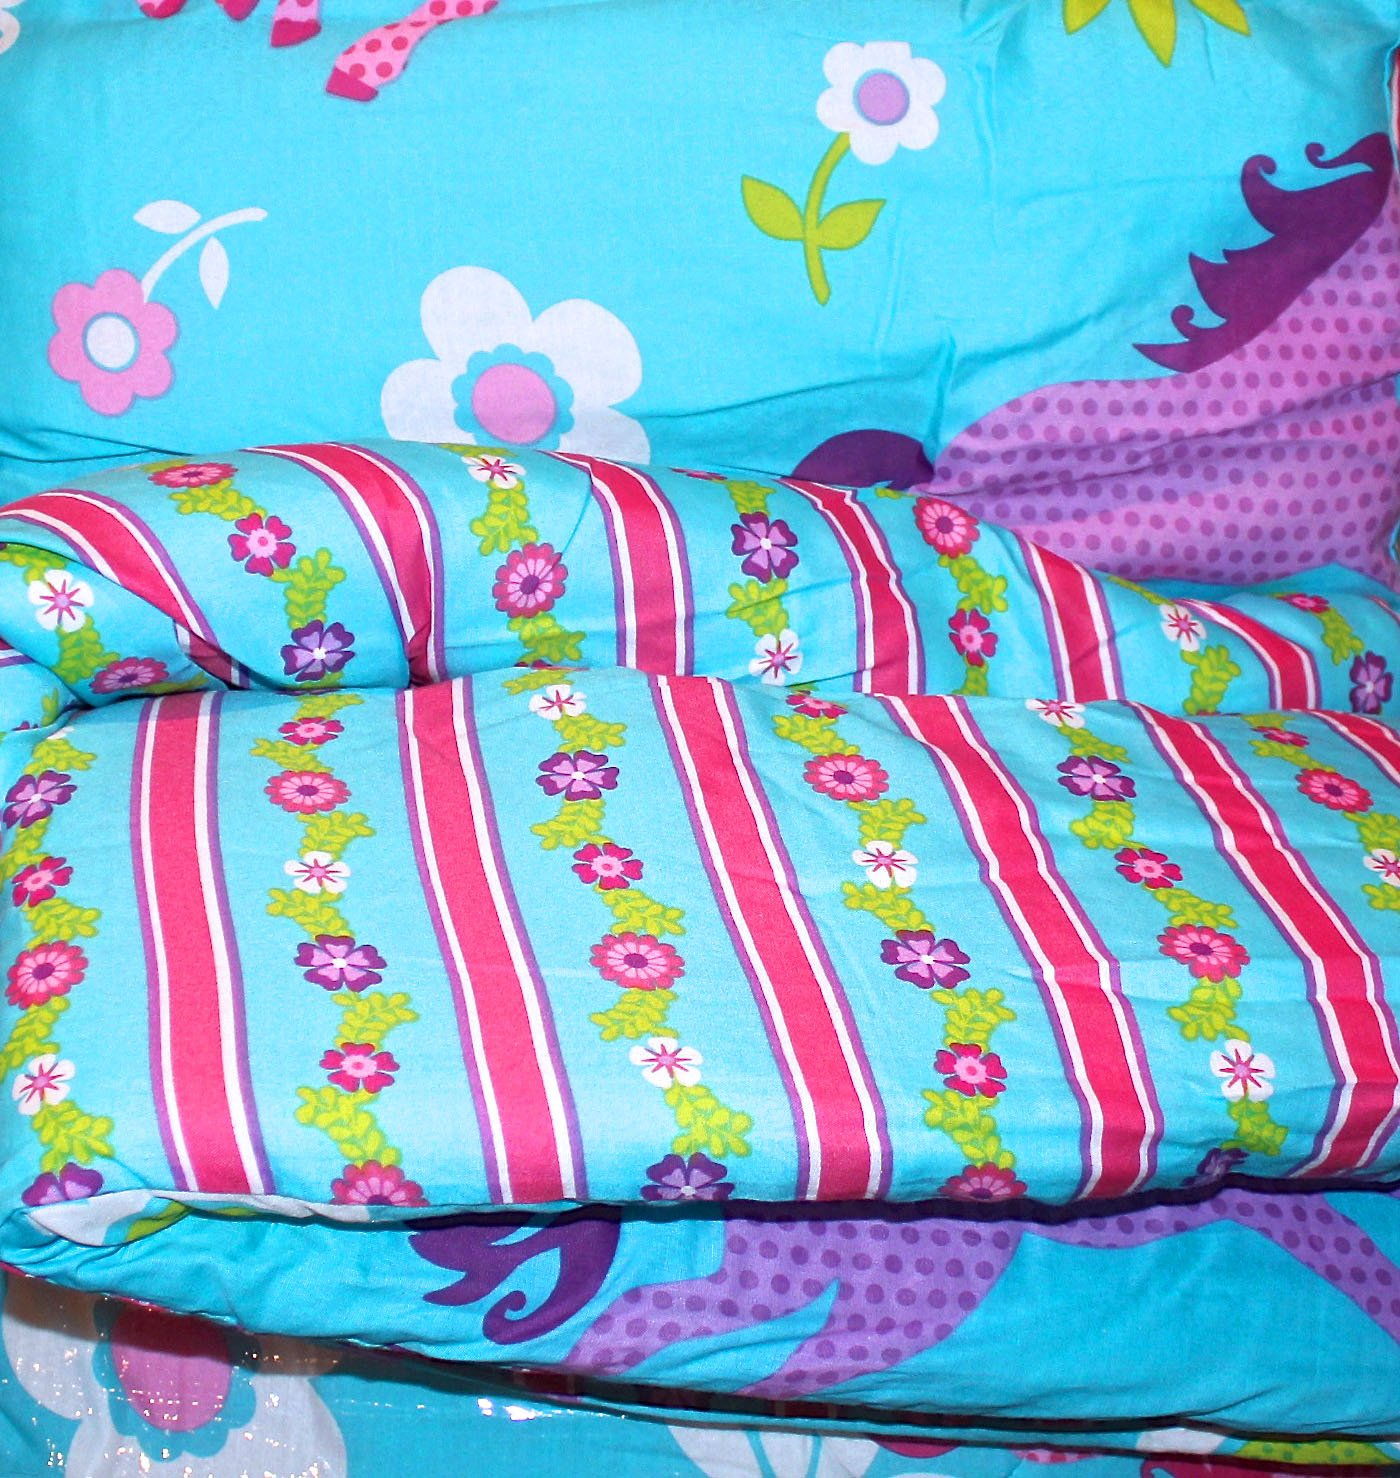 Girls Turquoise Blue & Pink PONY HORSE Comforter Set W/Sheets (Bed in a Bag) (FULL SIZE)